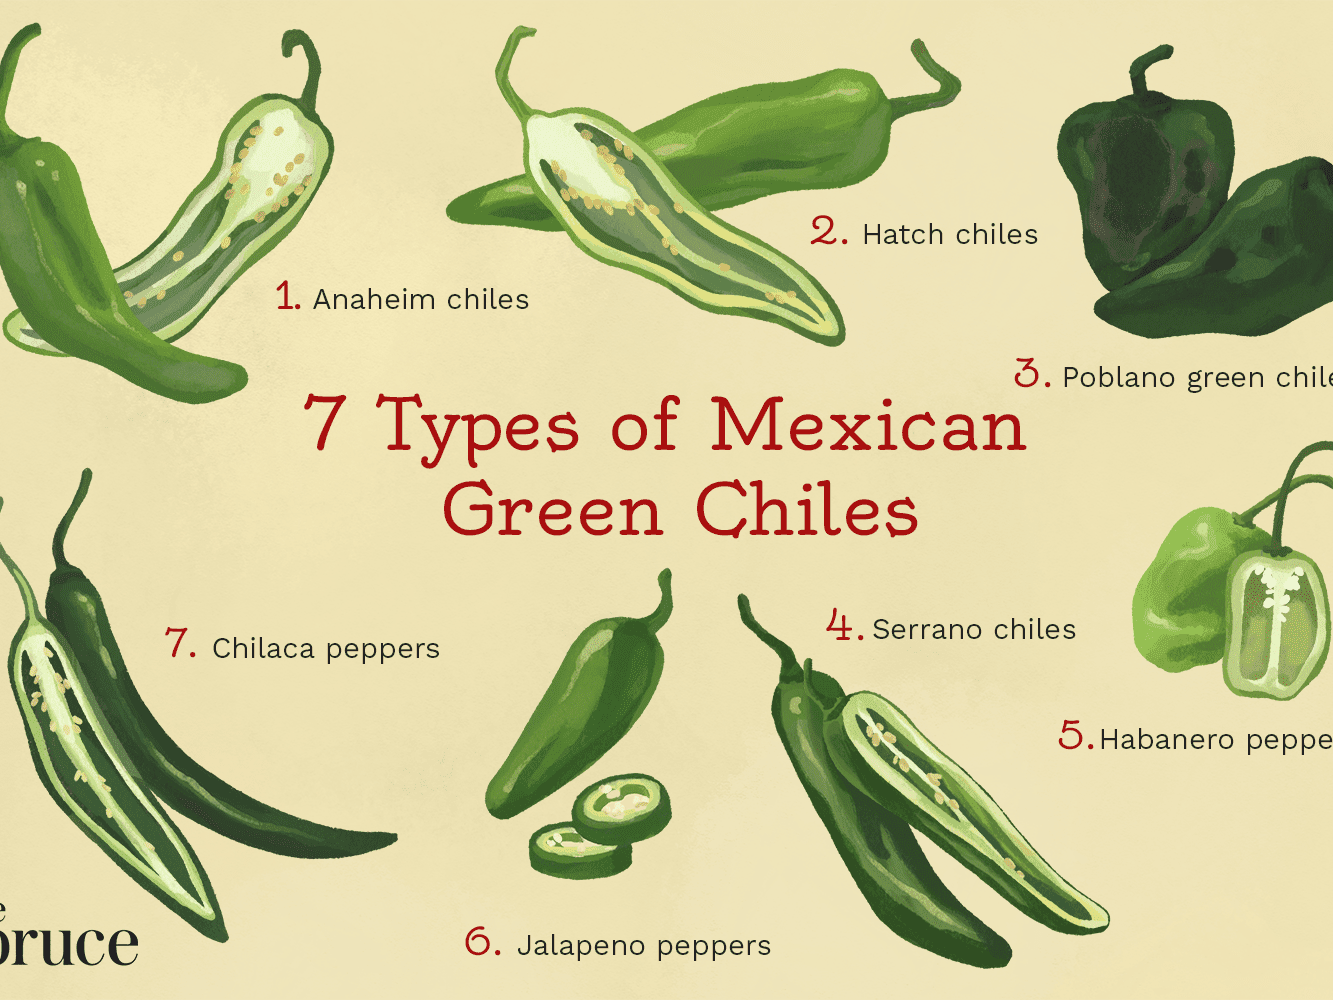 7 Types Of Mexican Green Chiles